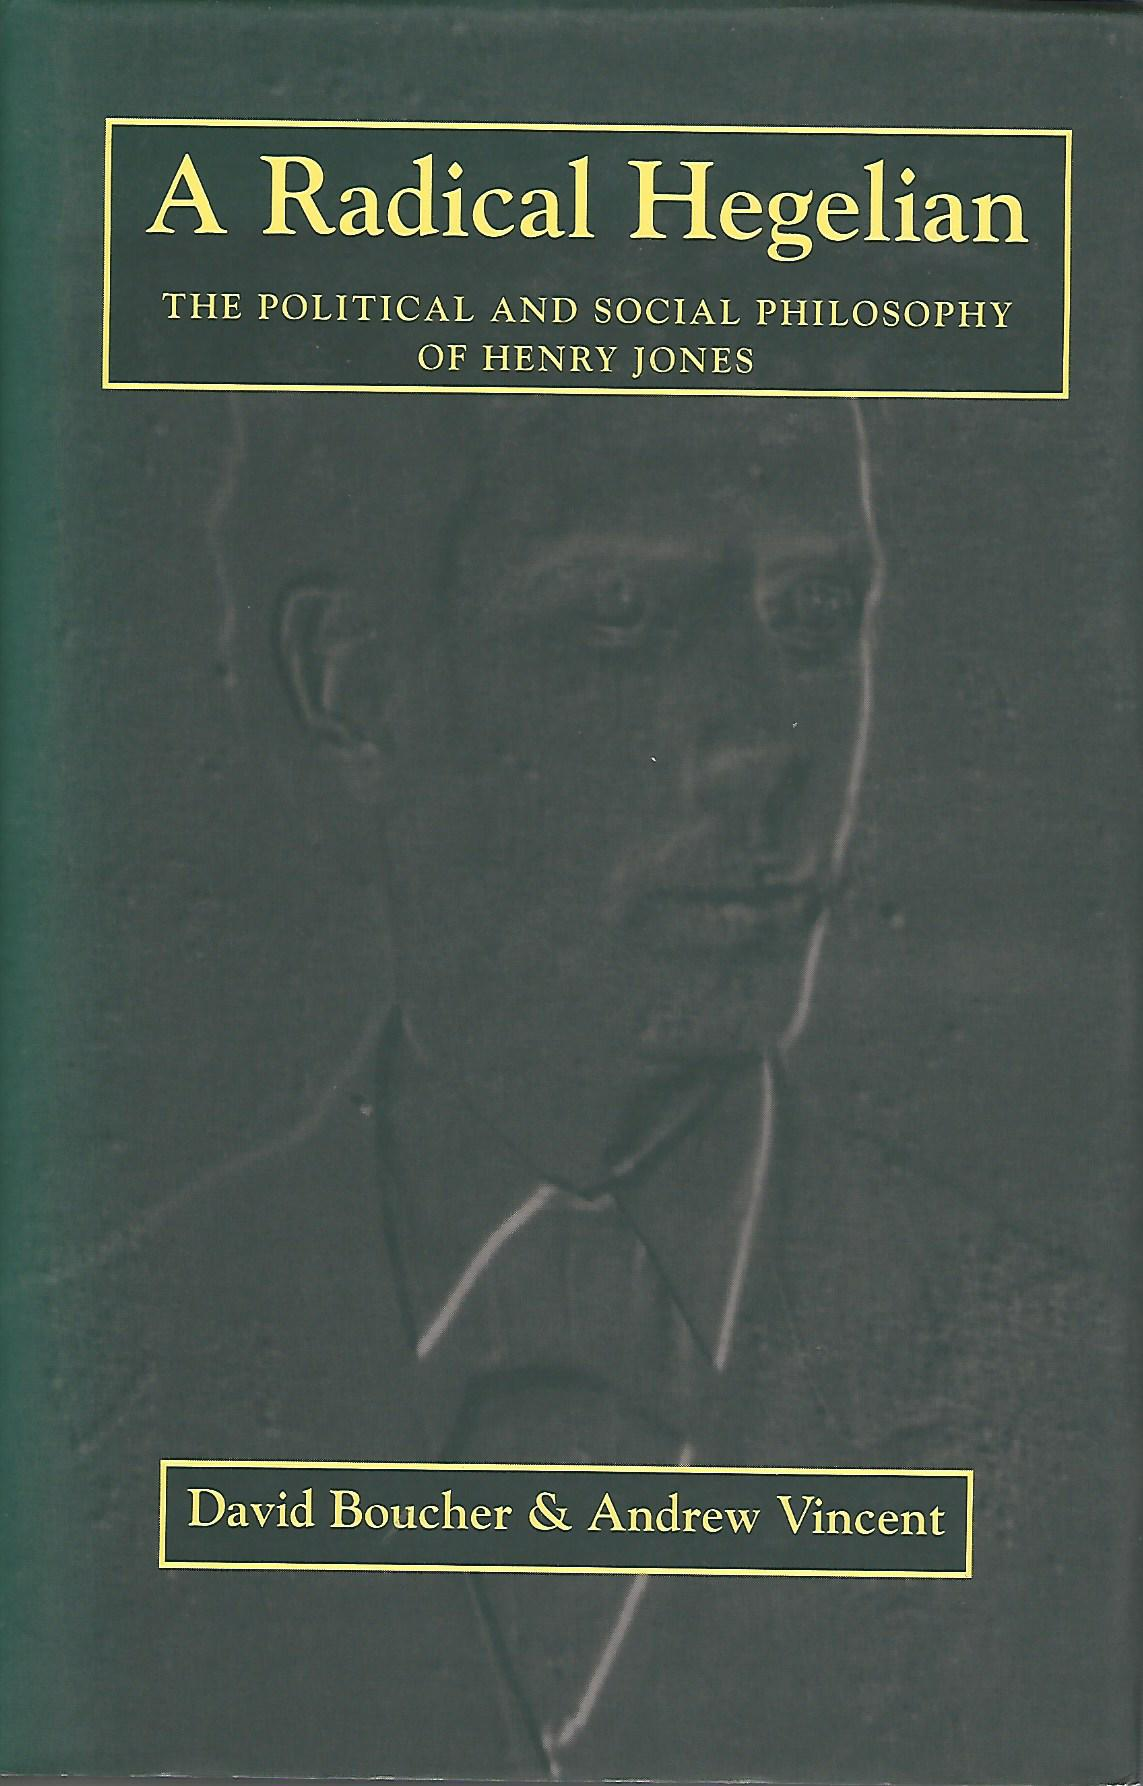 Image for A Radical Hegelian: Political and Social Philosophy of Henry Jones.